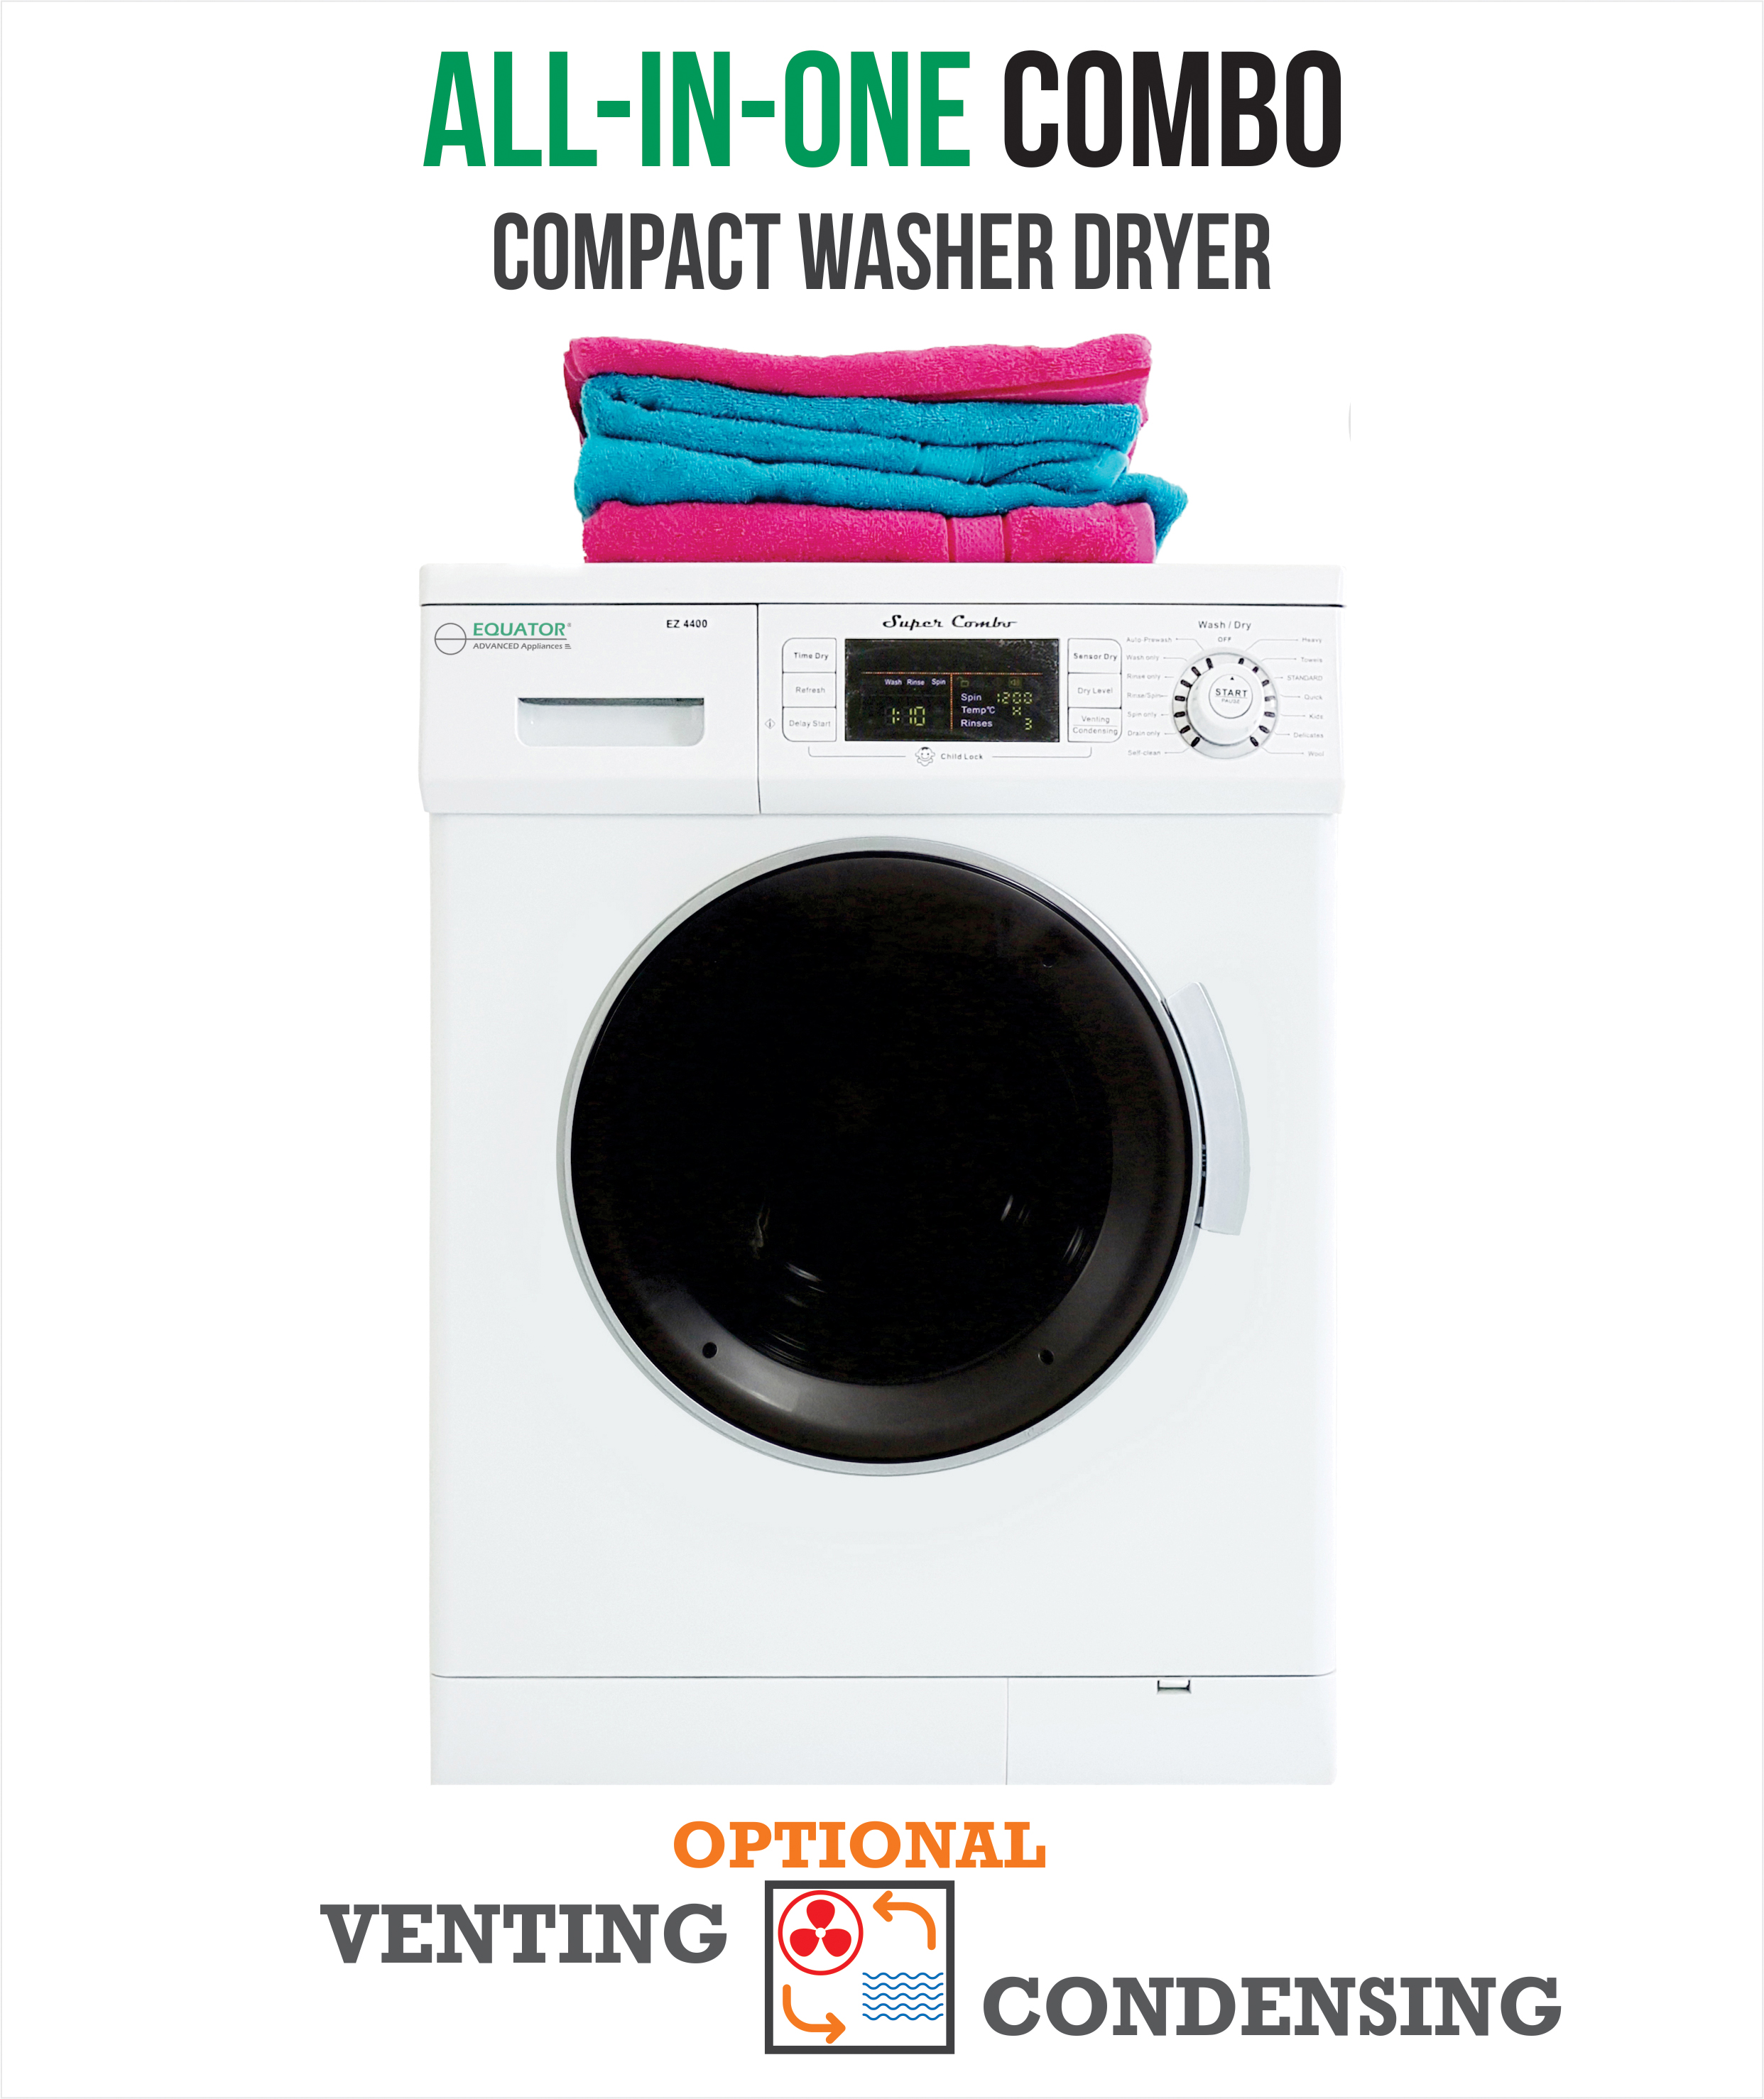 All-in-One 13 lb. 1200 RPM Compact 2013 Combo Washer Dryer with Optional Condensing/ Venting in White.